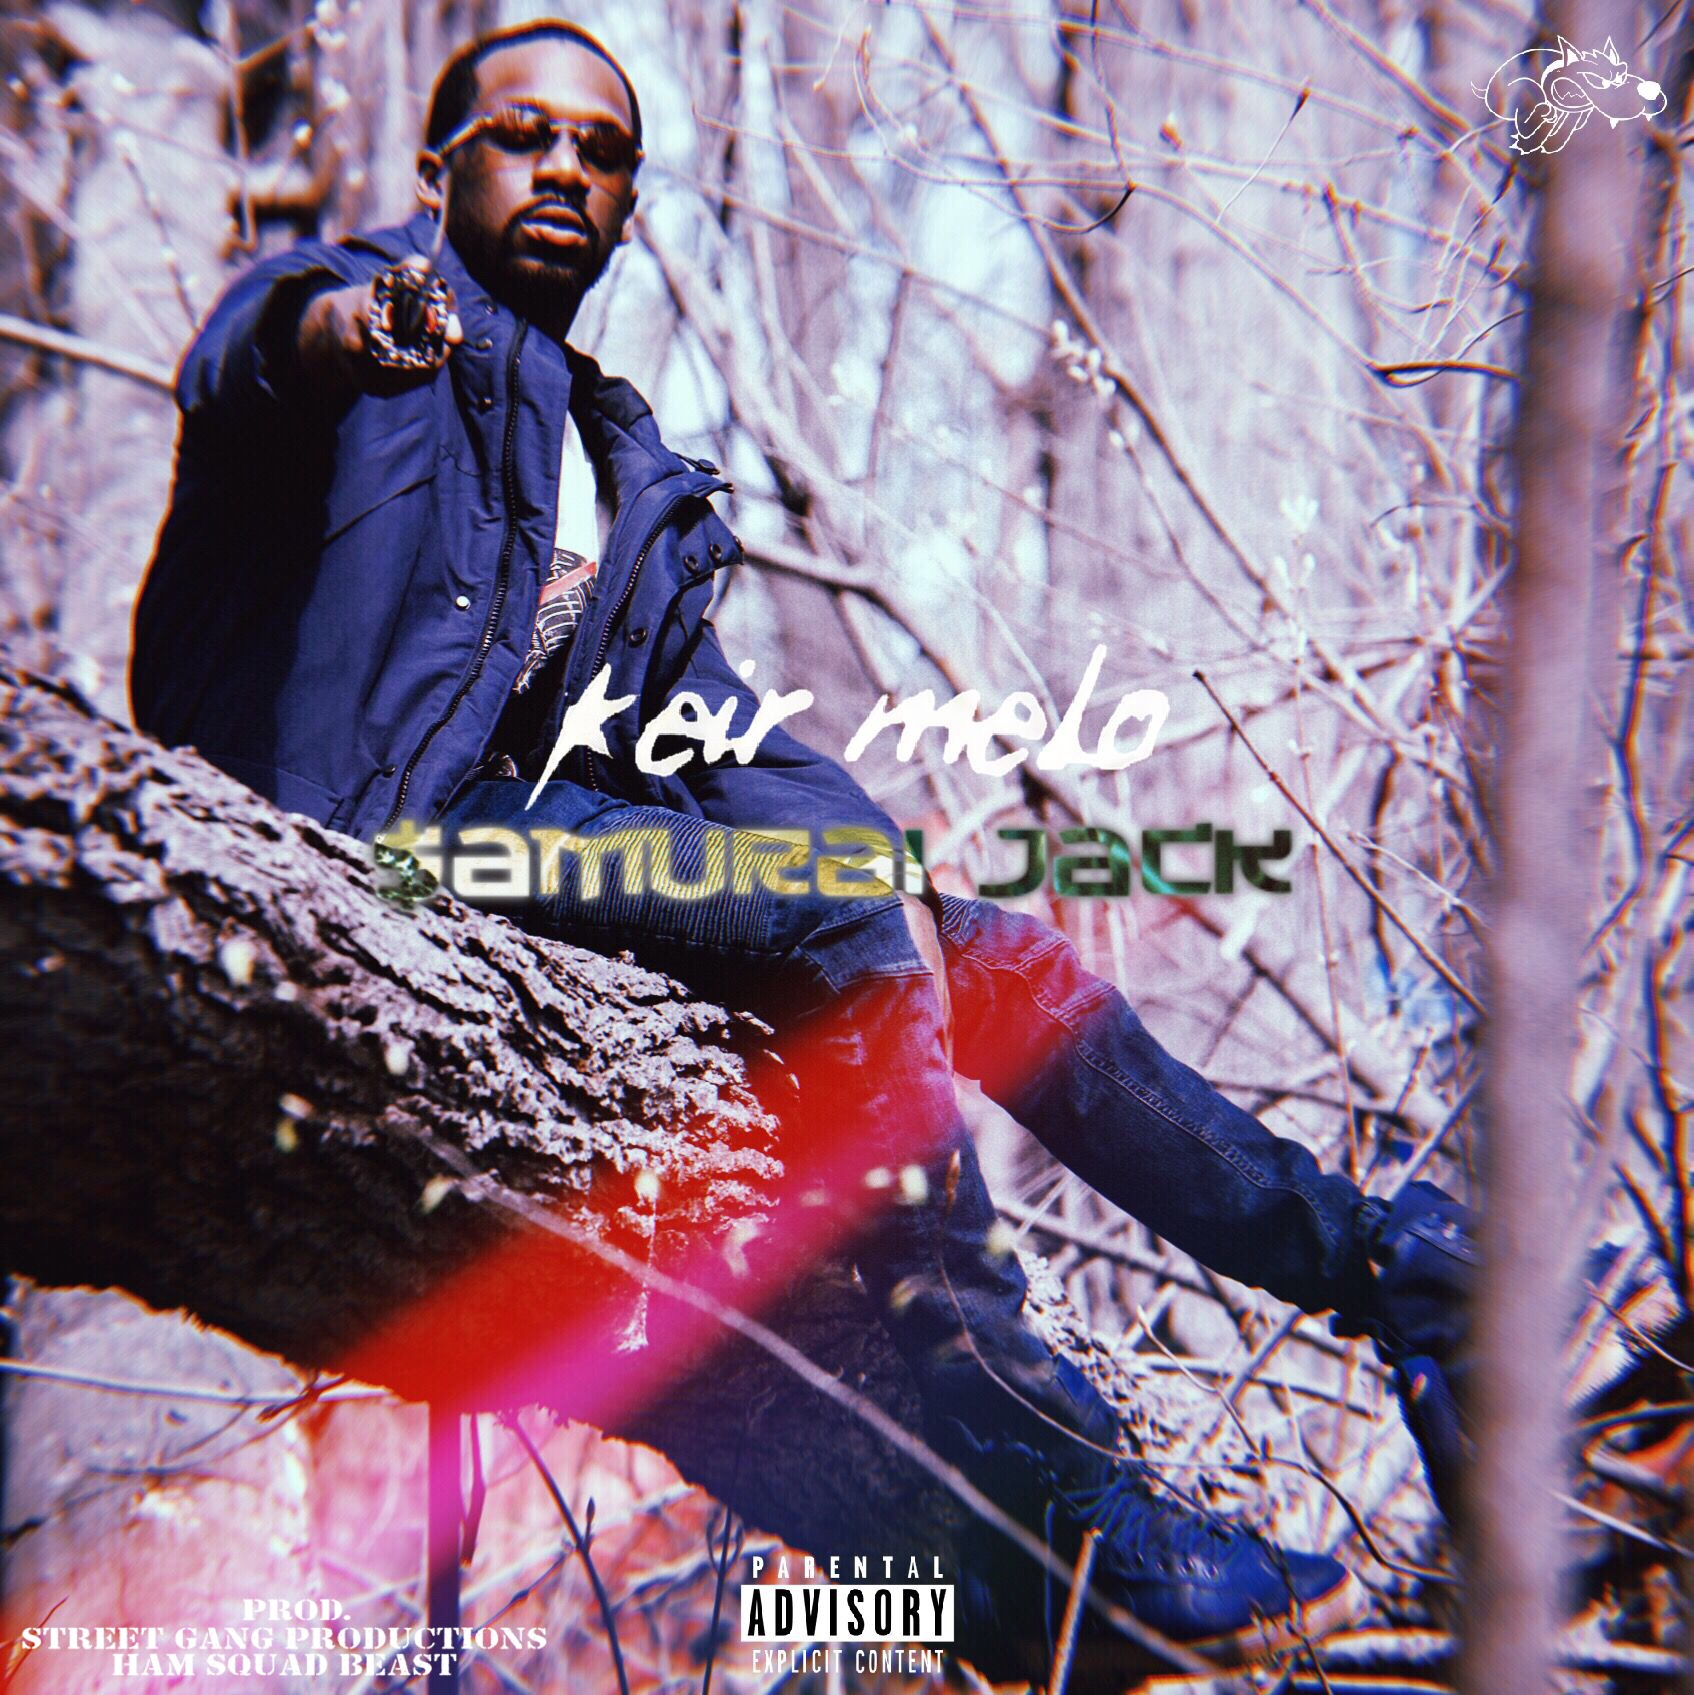 "OFFICIALLY LISTEN TO KEIR MELO'S NEWEST SINGLE  ""SAMURAI JACK"" OUT NOW AVAILABLE ON ALL MUSIC  PLATFORMS ."